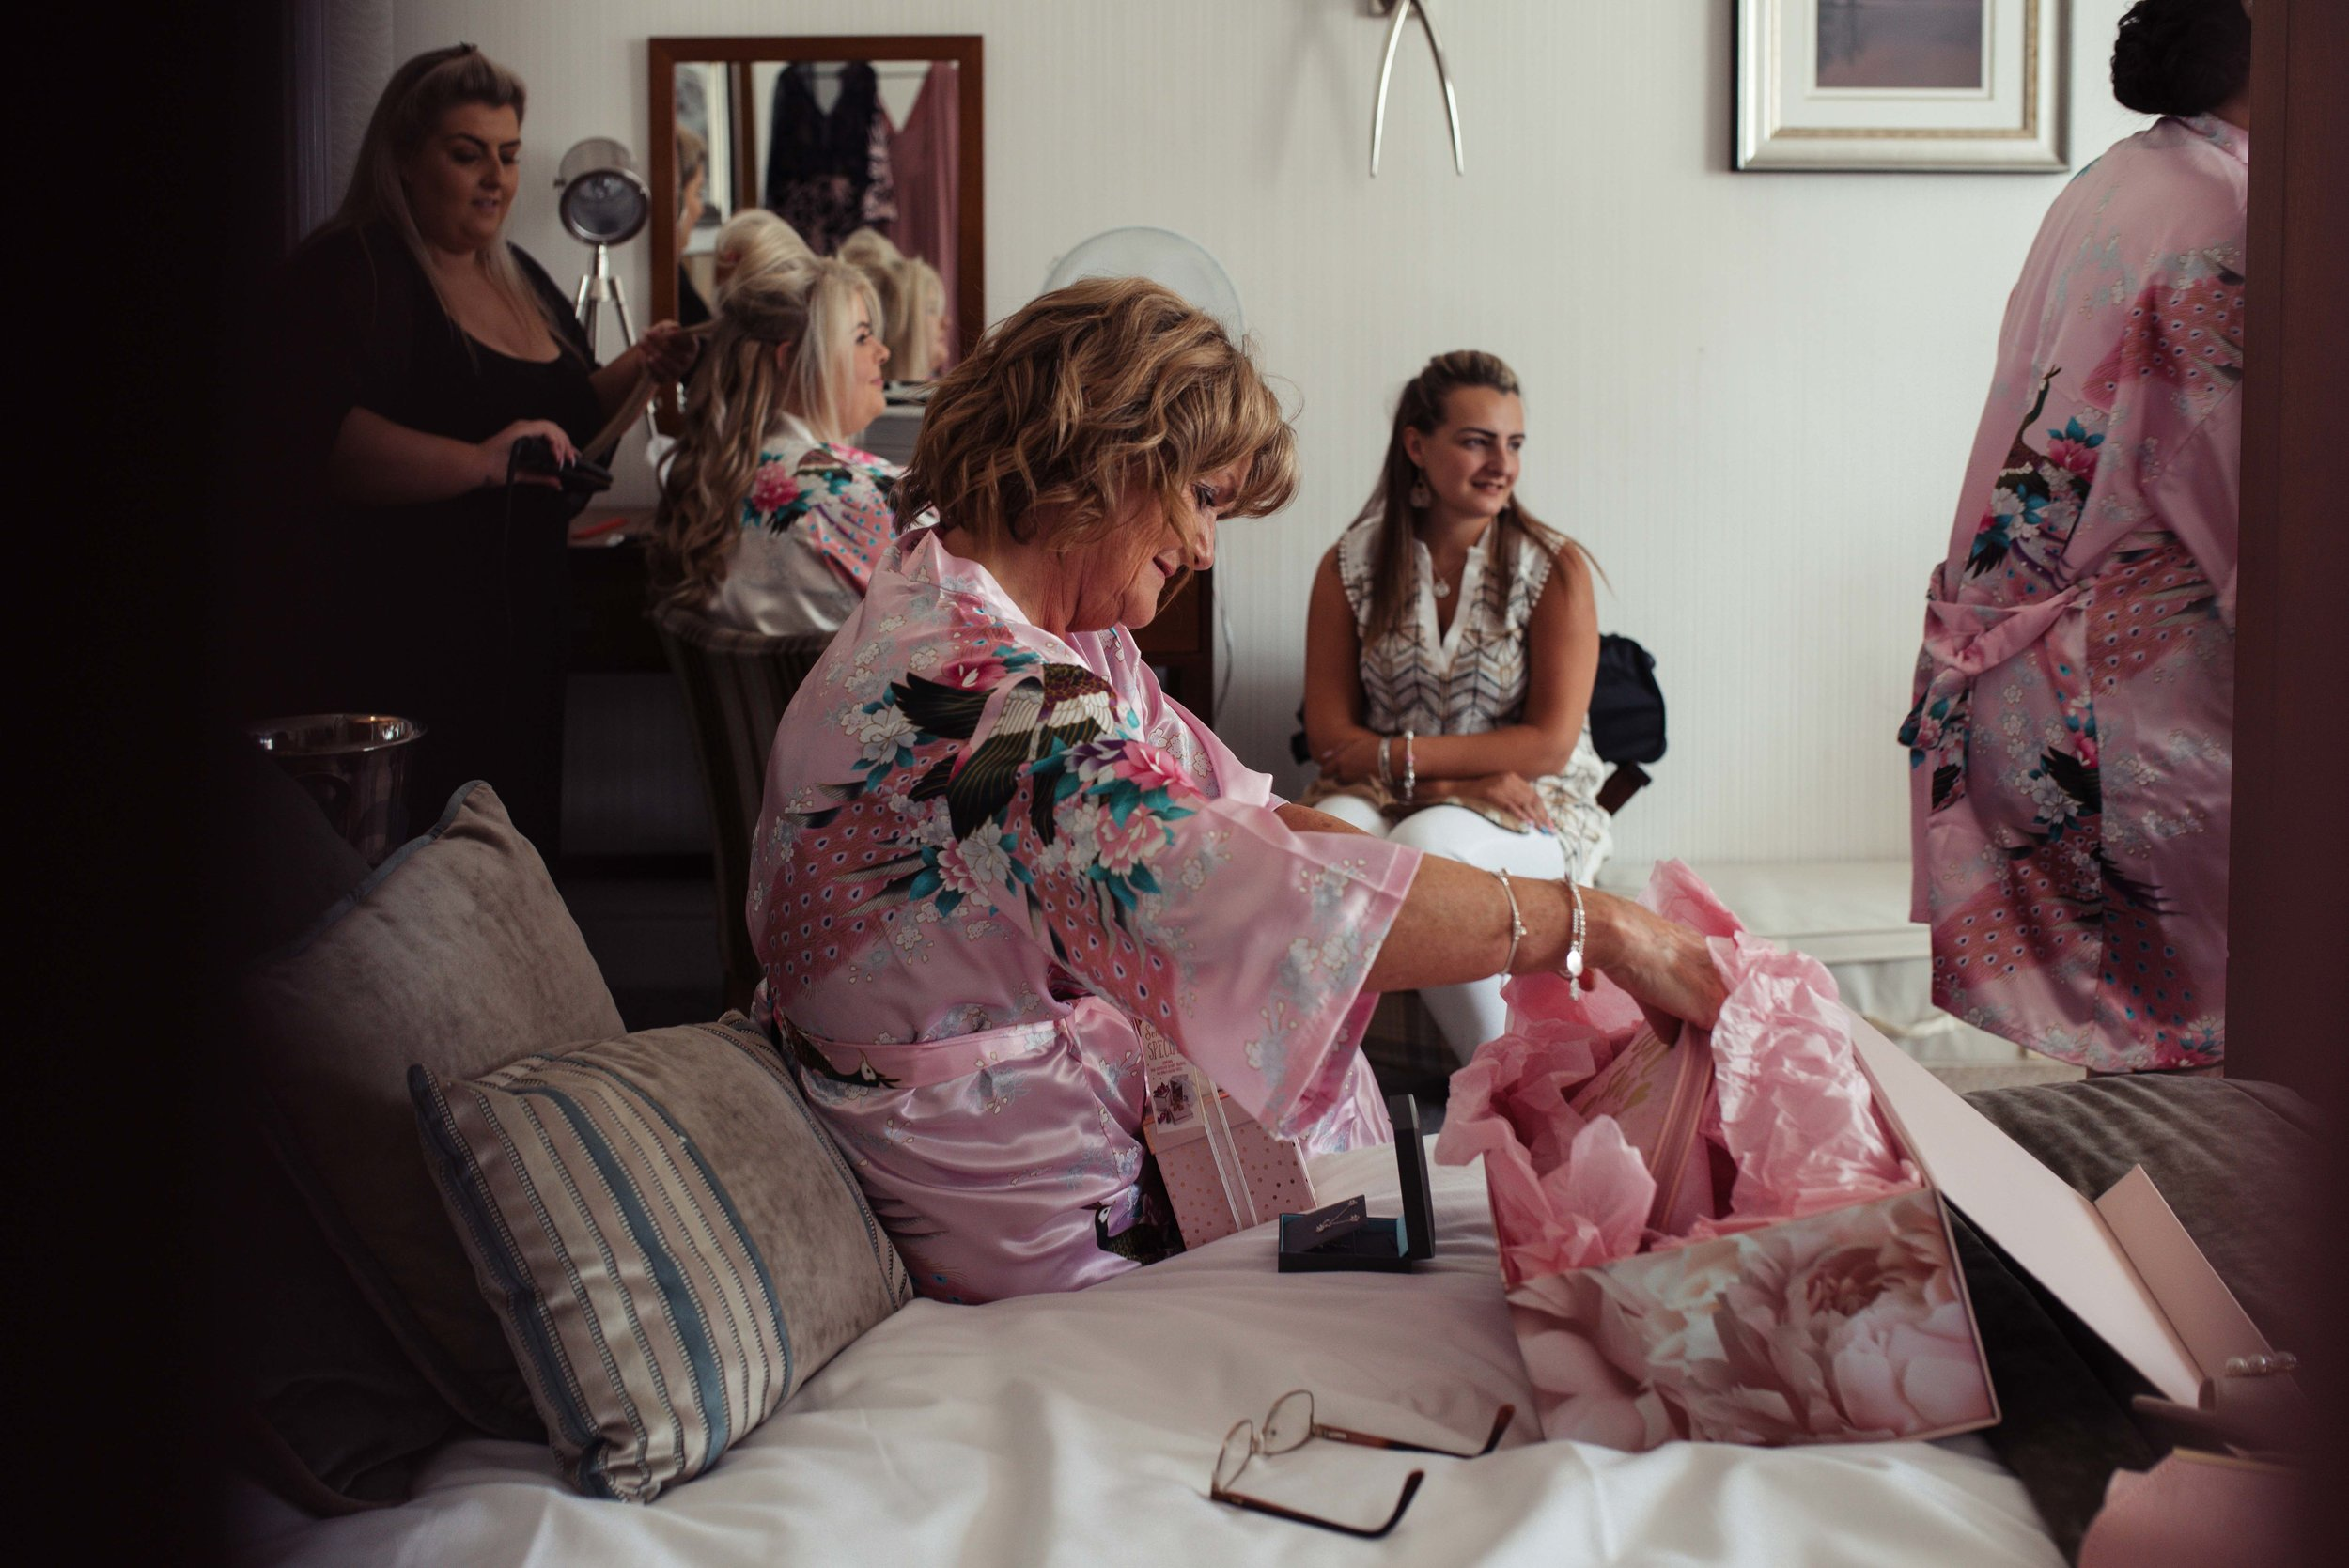 The auntie of the bride sits on the bed and looks at her wedding gifts